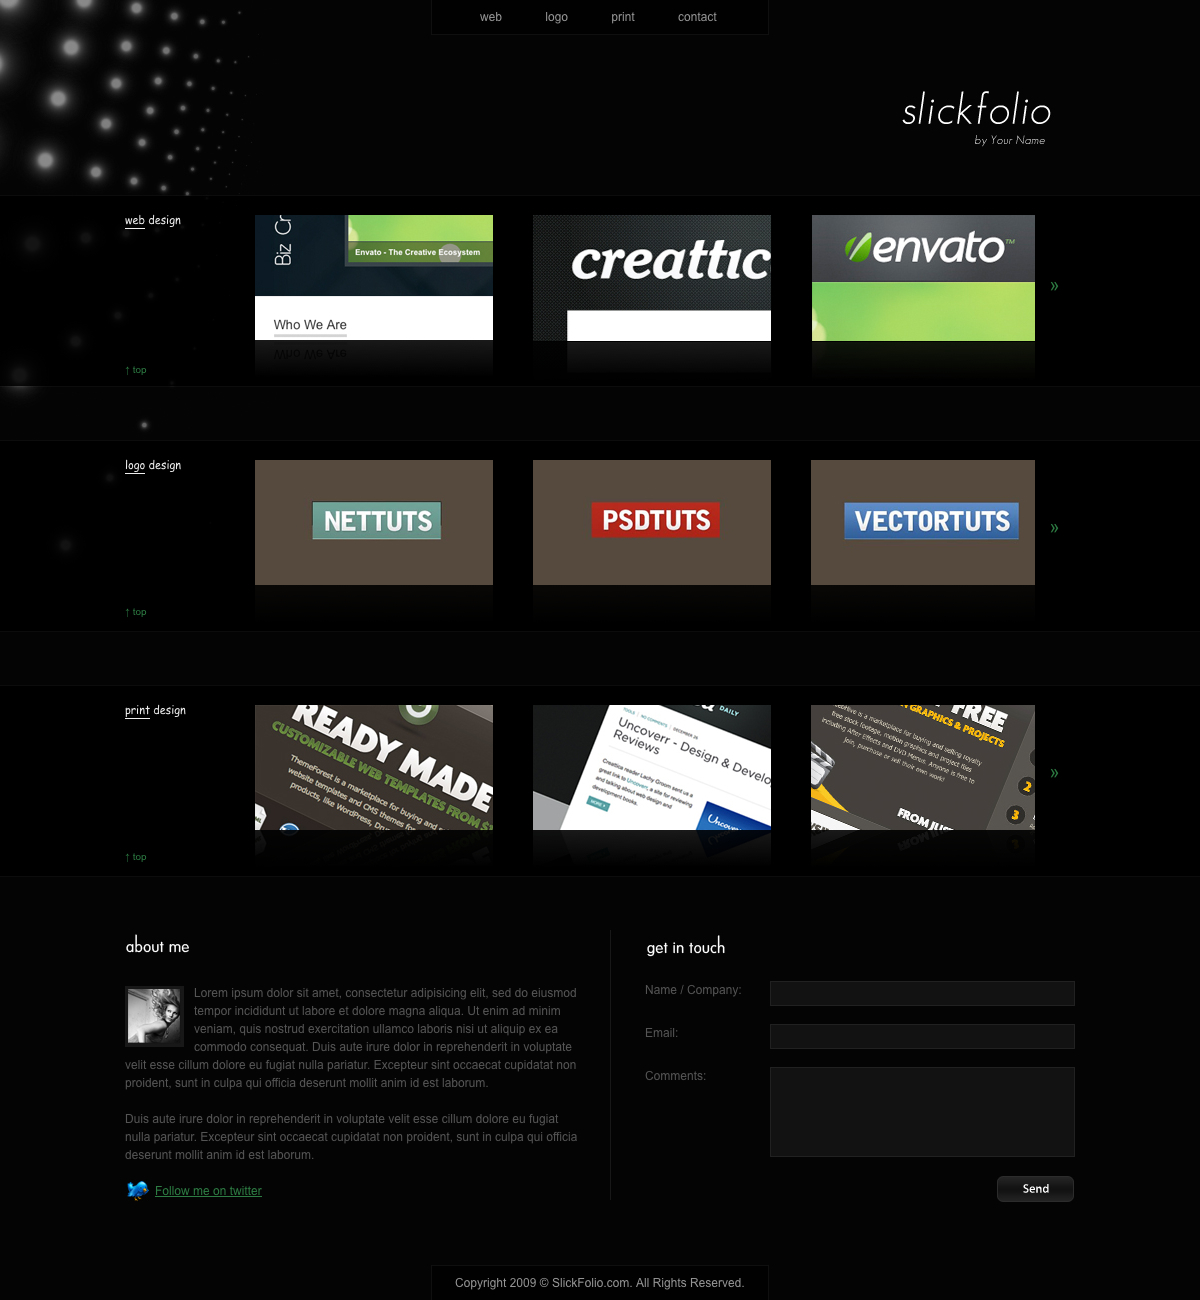 SlickFolio - Photographer / Web Designer Creative Portfolio - SlickFolio - One-page Creative Portfolio Theme.